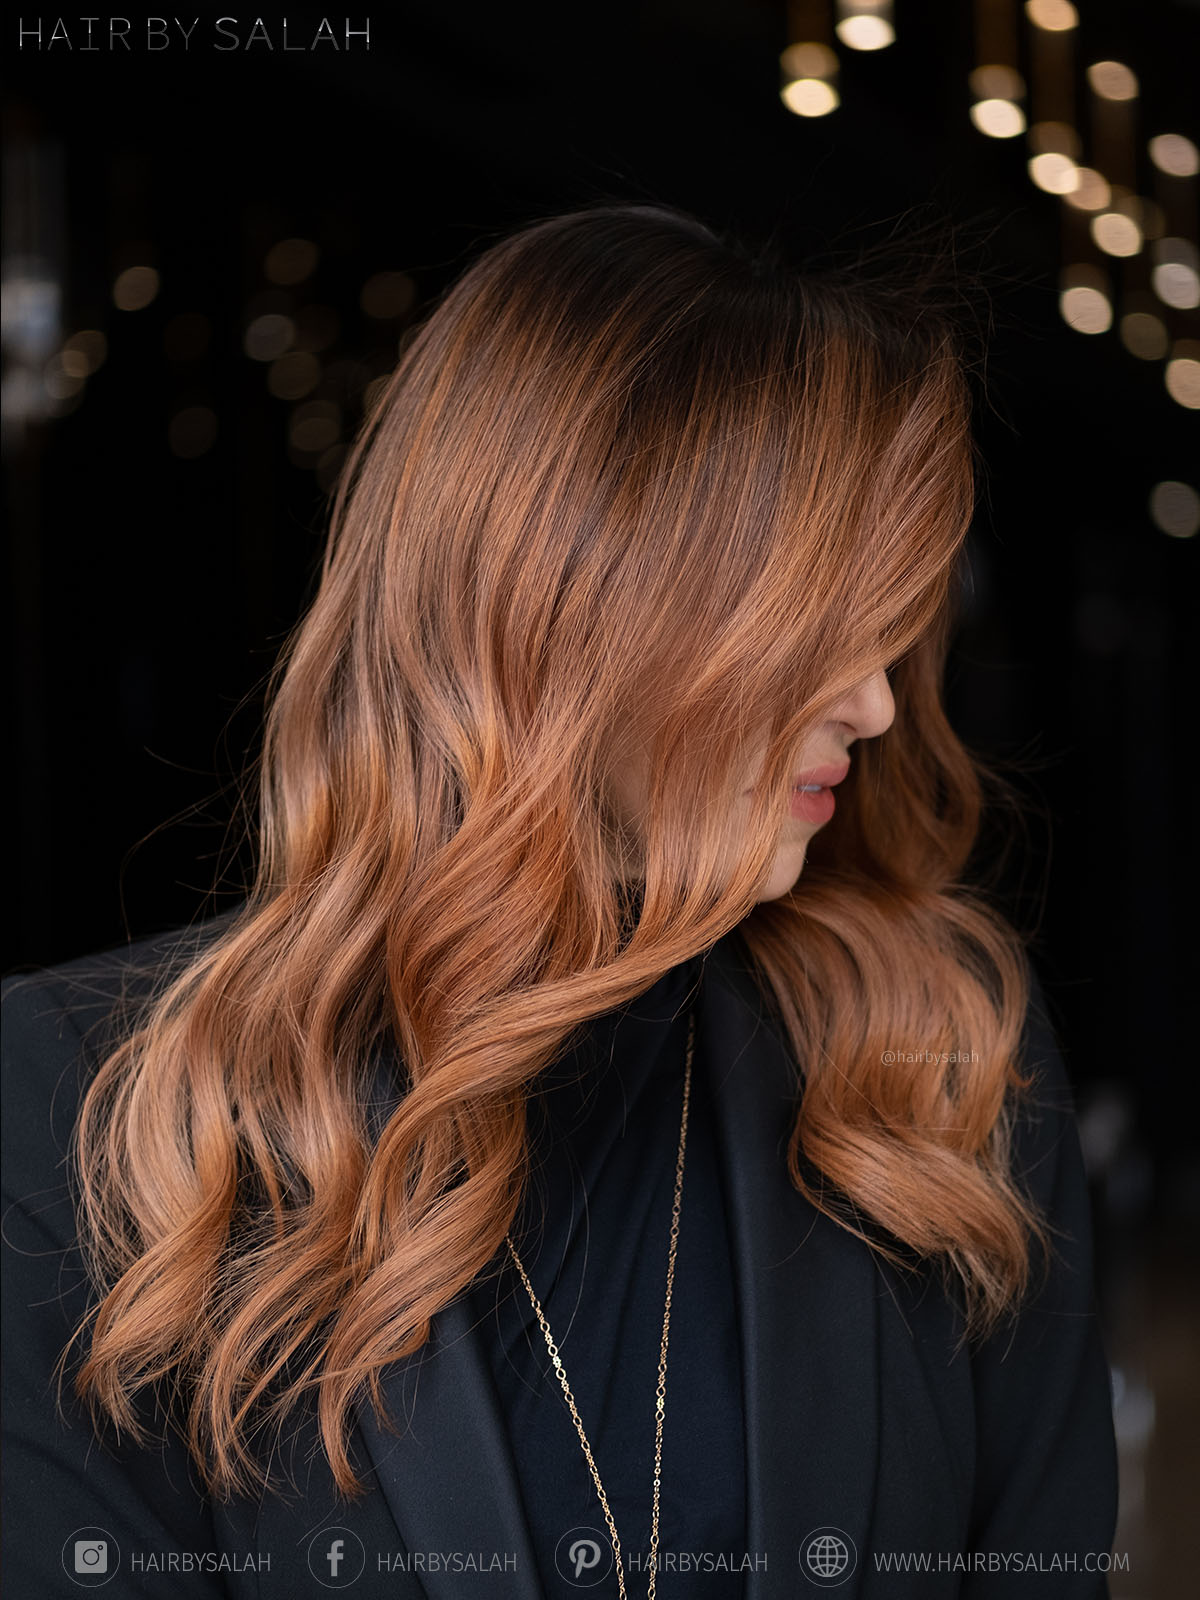 Shade Blend Hair Service from Hair by Salah and Hair Creators Color Team